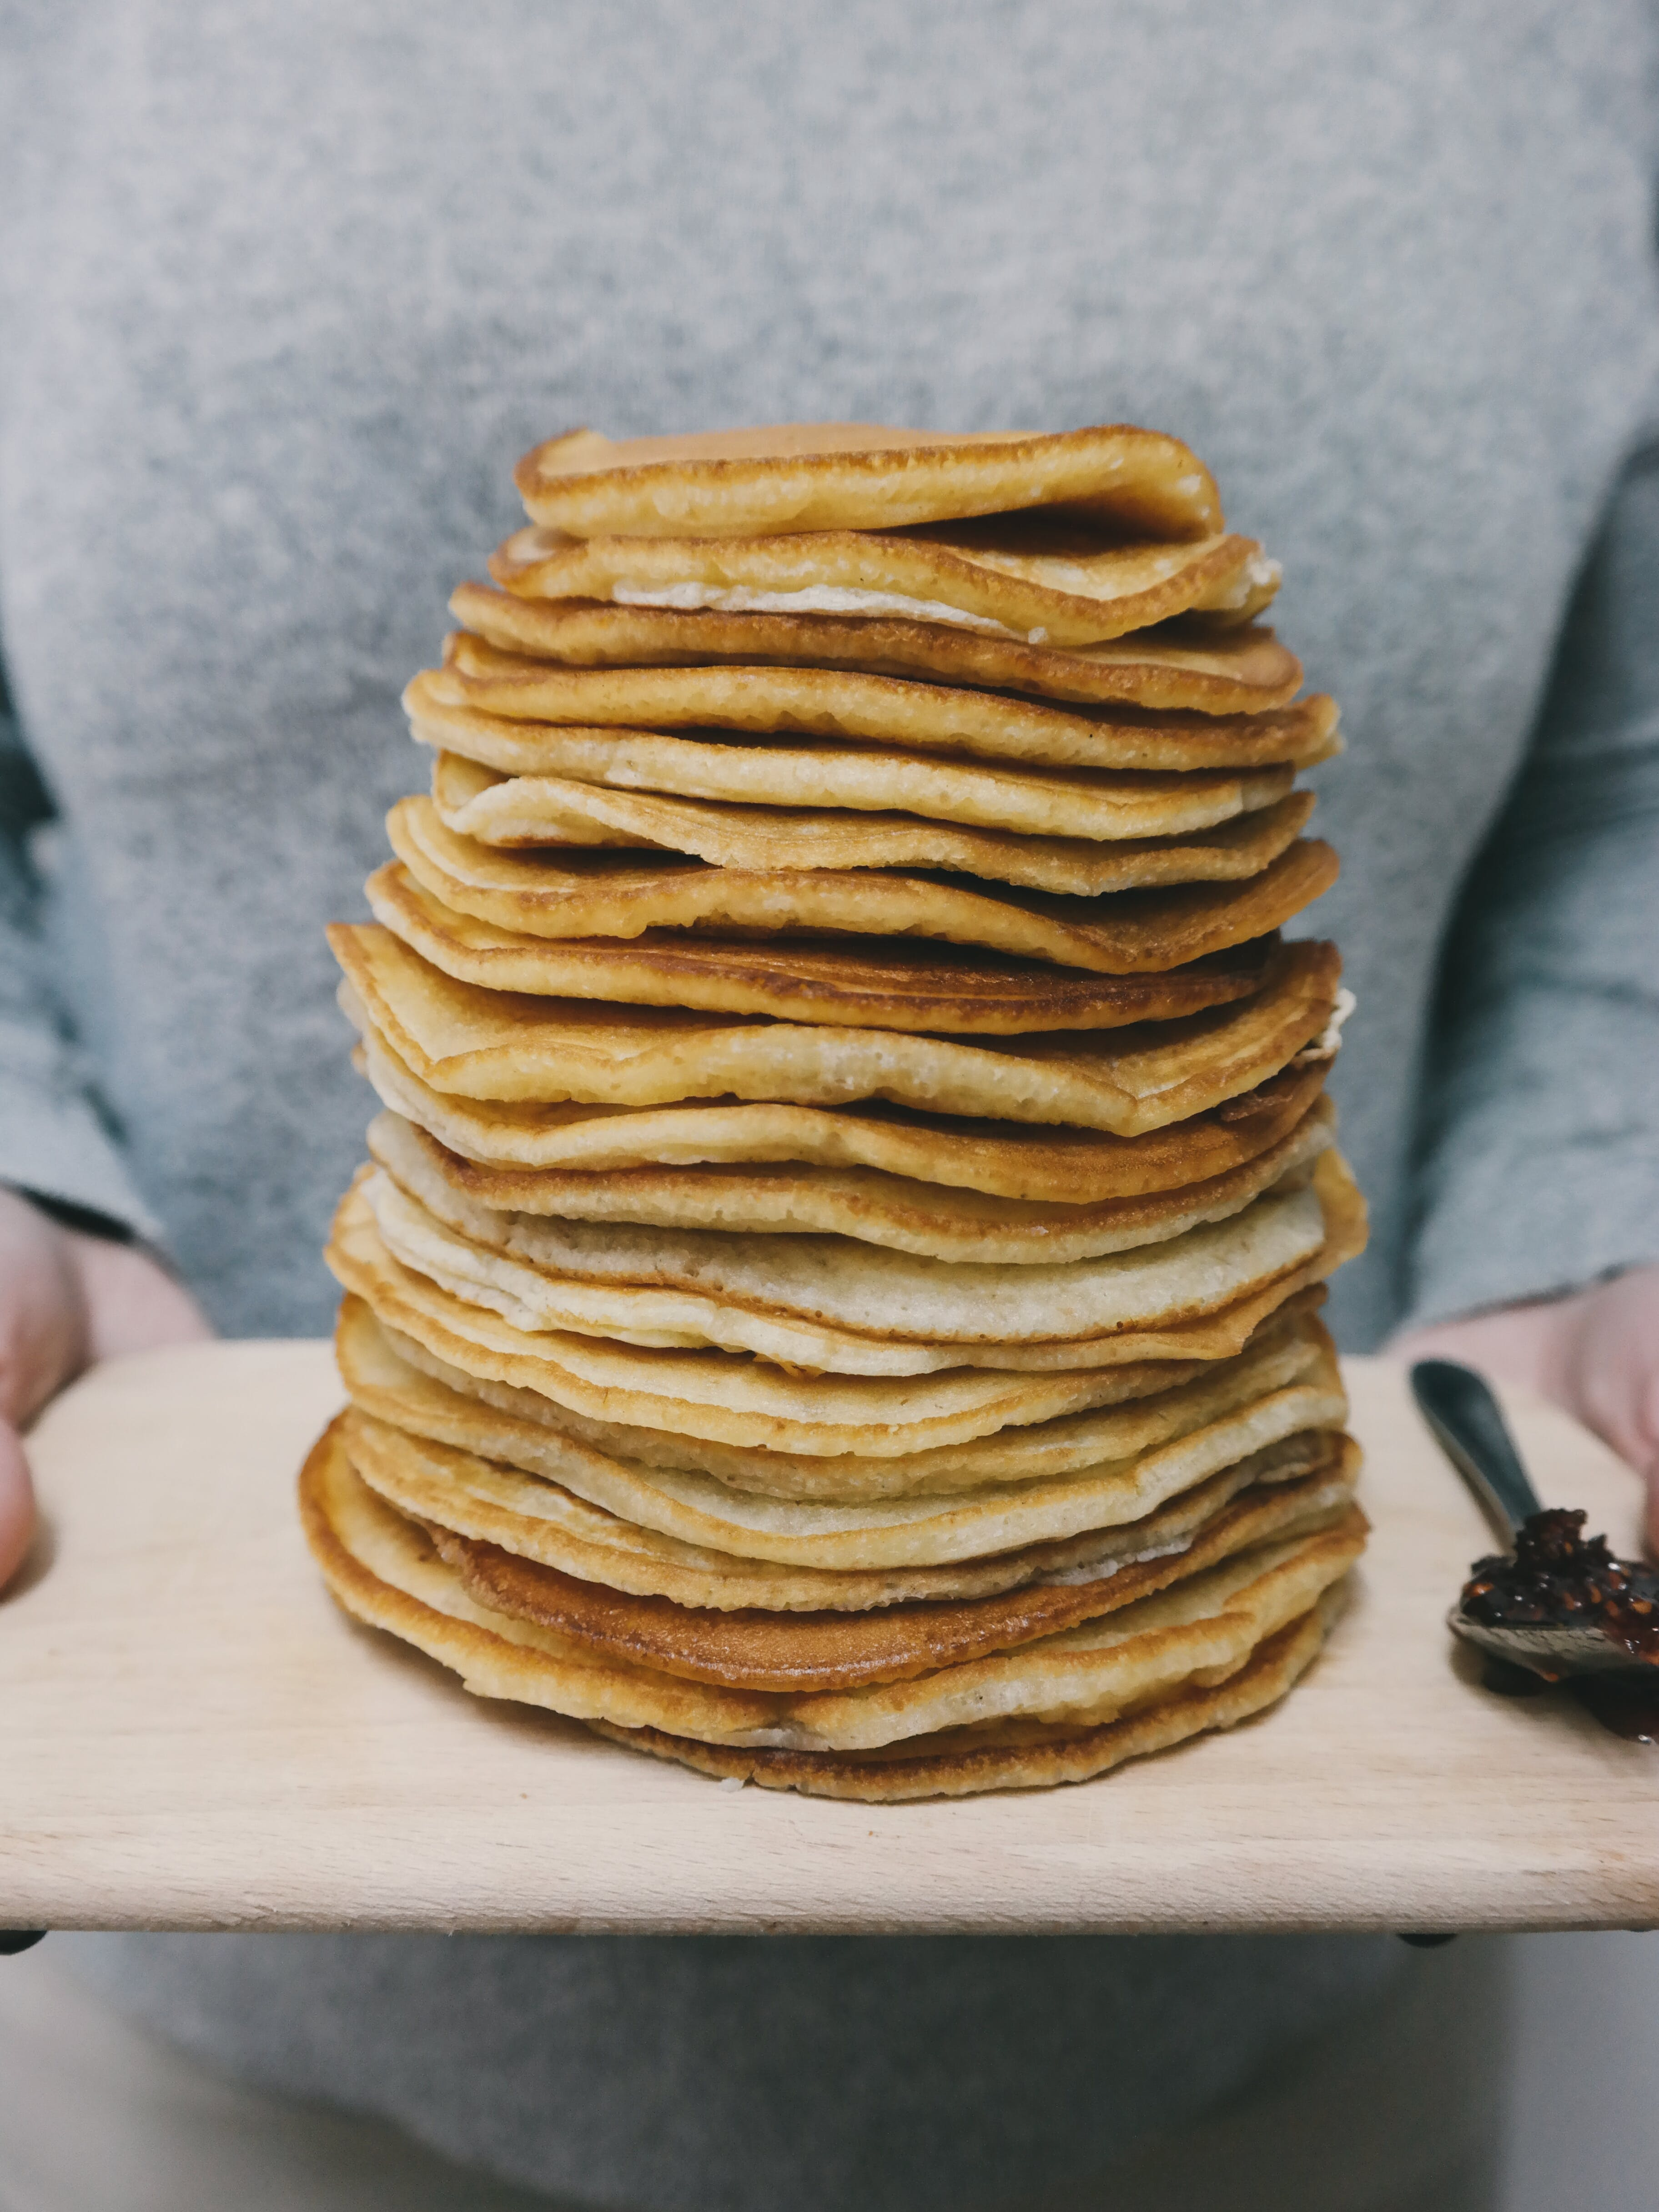 Person Holding Board With Pancakes